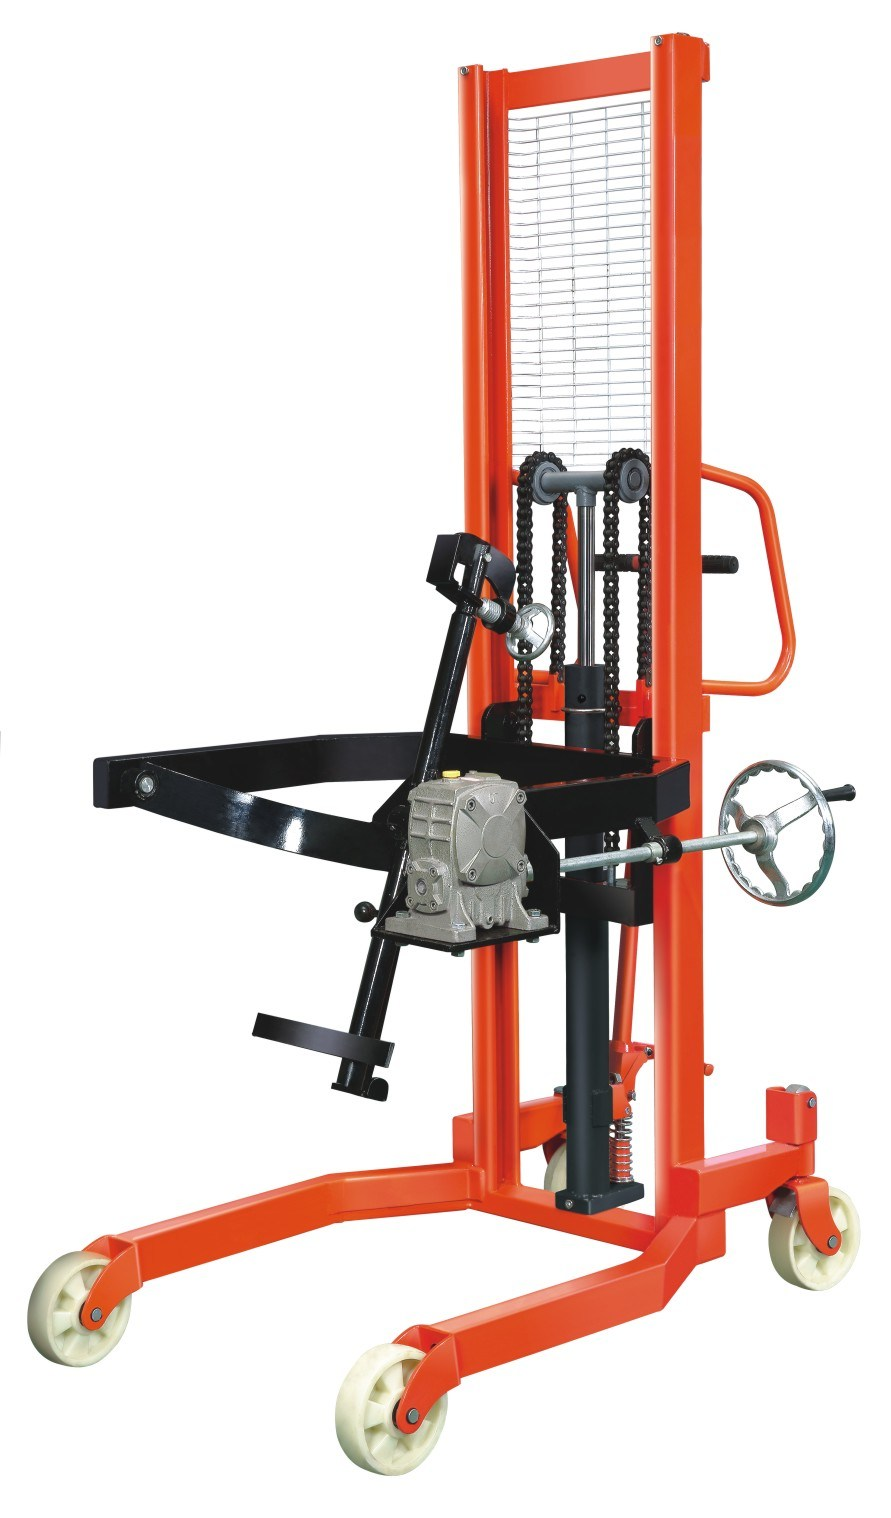 250-350kg Oil Drum Manual/Oil Drum Carrier Hand Pallet Truck